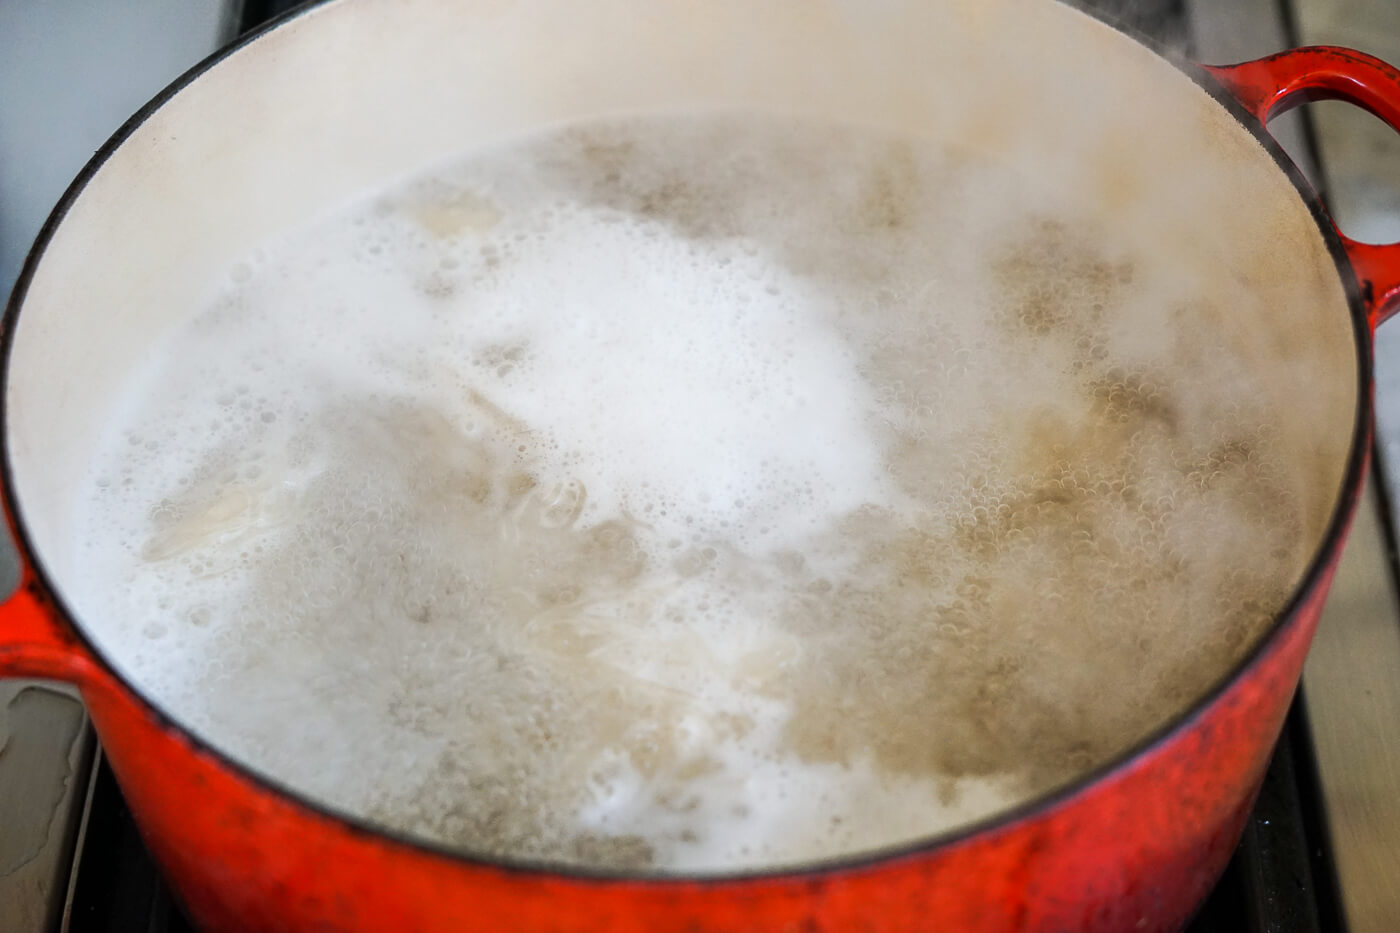 Soaked sea moss boils in a large pot on the stove.